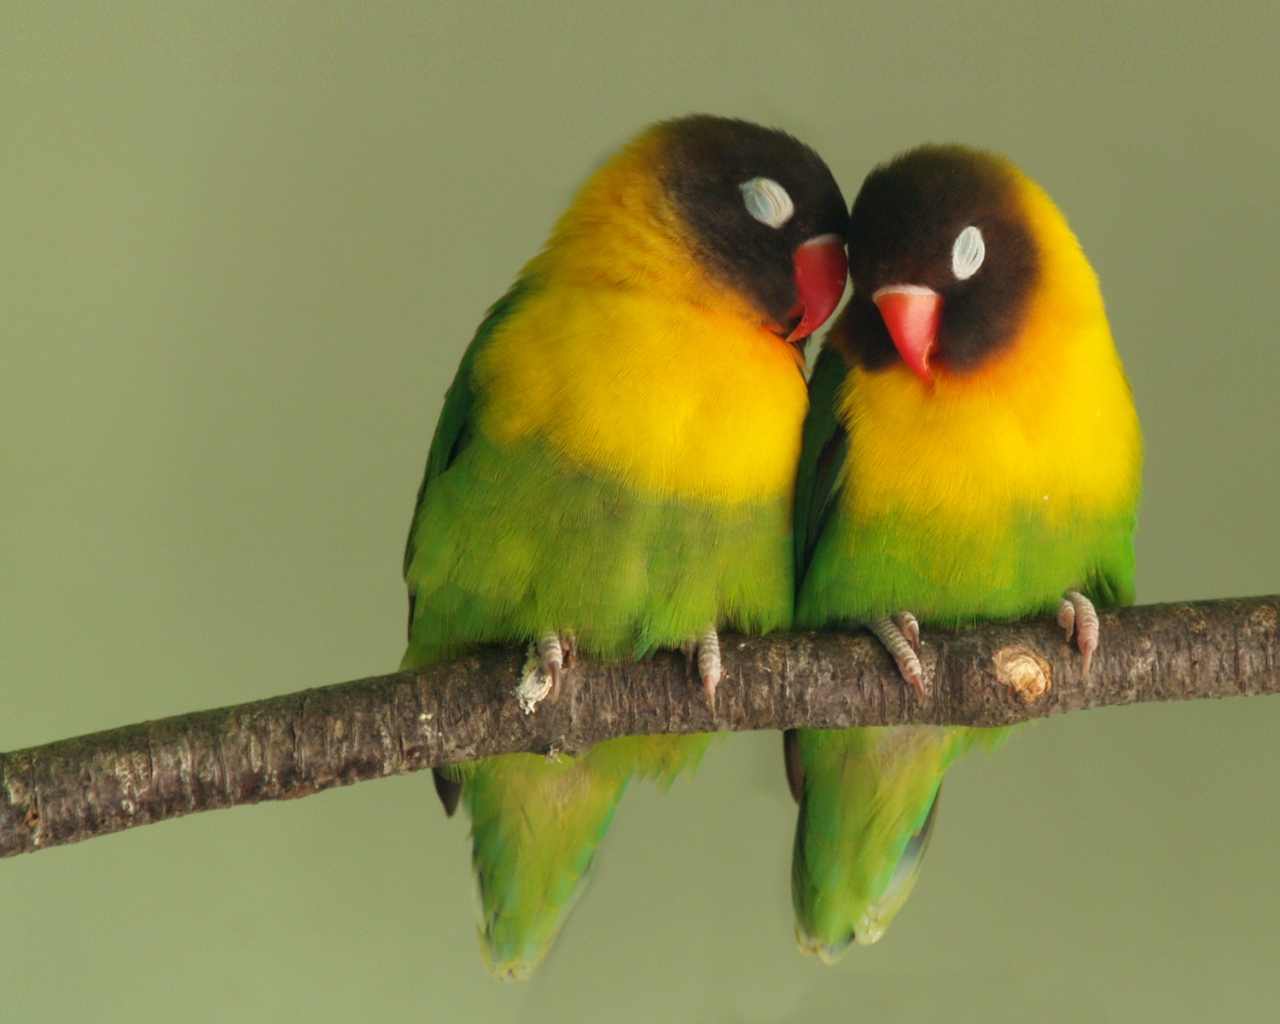 http://3.bp.blogspot.com/-VFW3XIgzybc/TymTm6dgJaI/AAAAAAAAIug/HXUyhrv6N7g/s1600/beautiful-love-birds-wallpapers-for-desktop-0.jpg